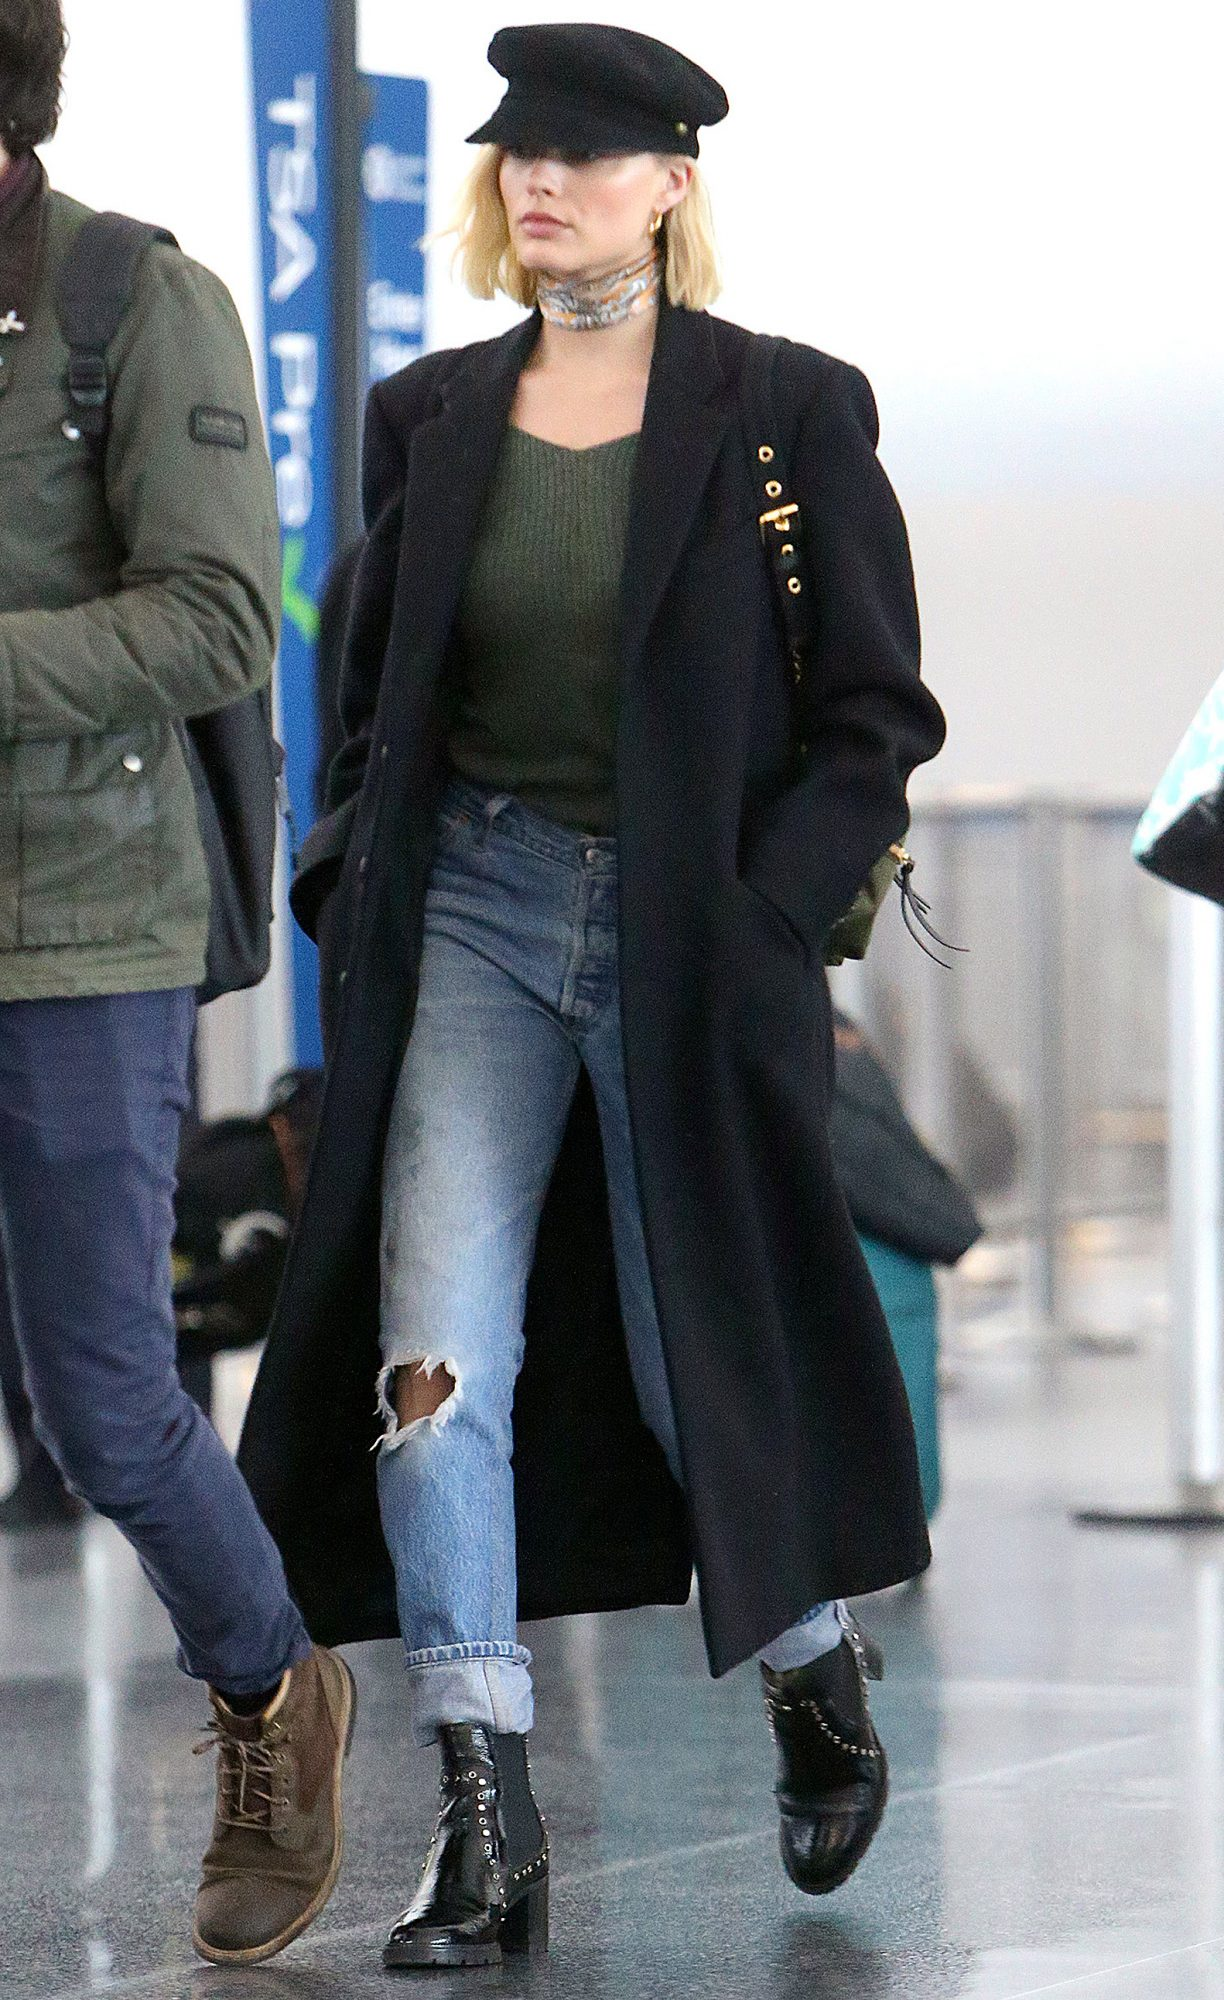 Margot Robbie departs out of JFK airport with a Mystery Man after a low key trip in New York City.